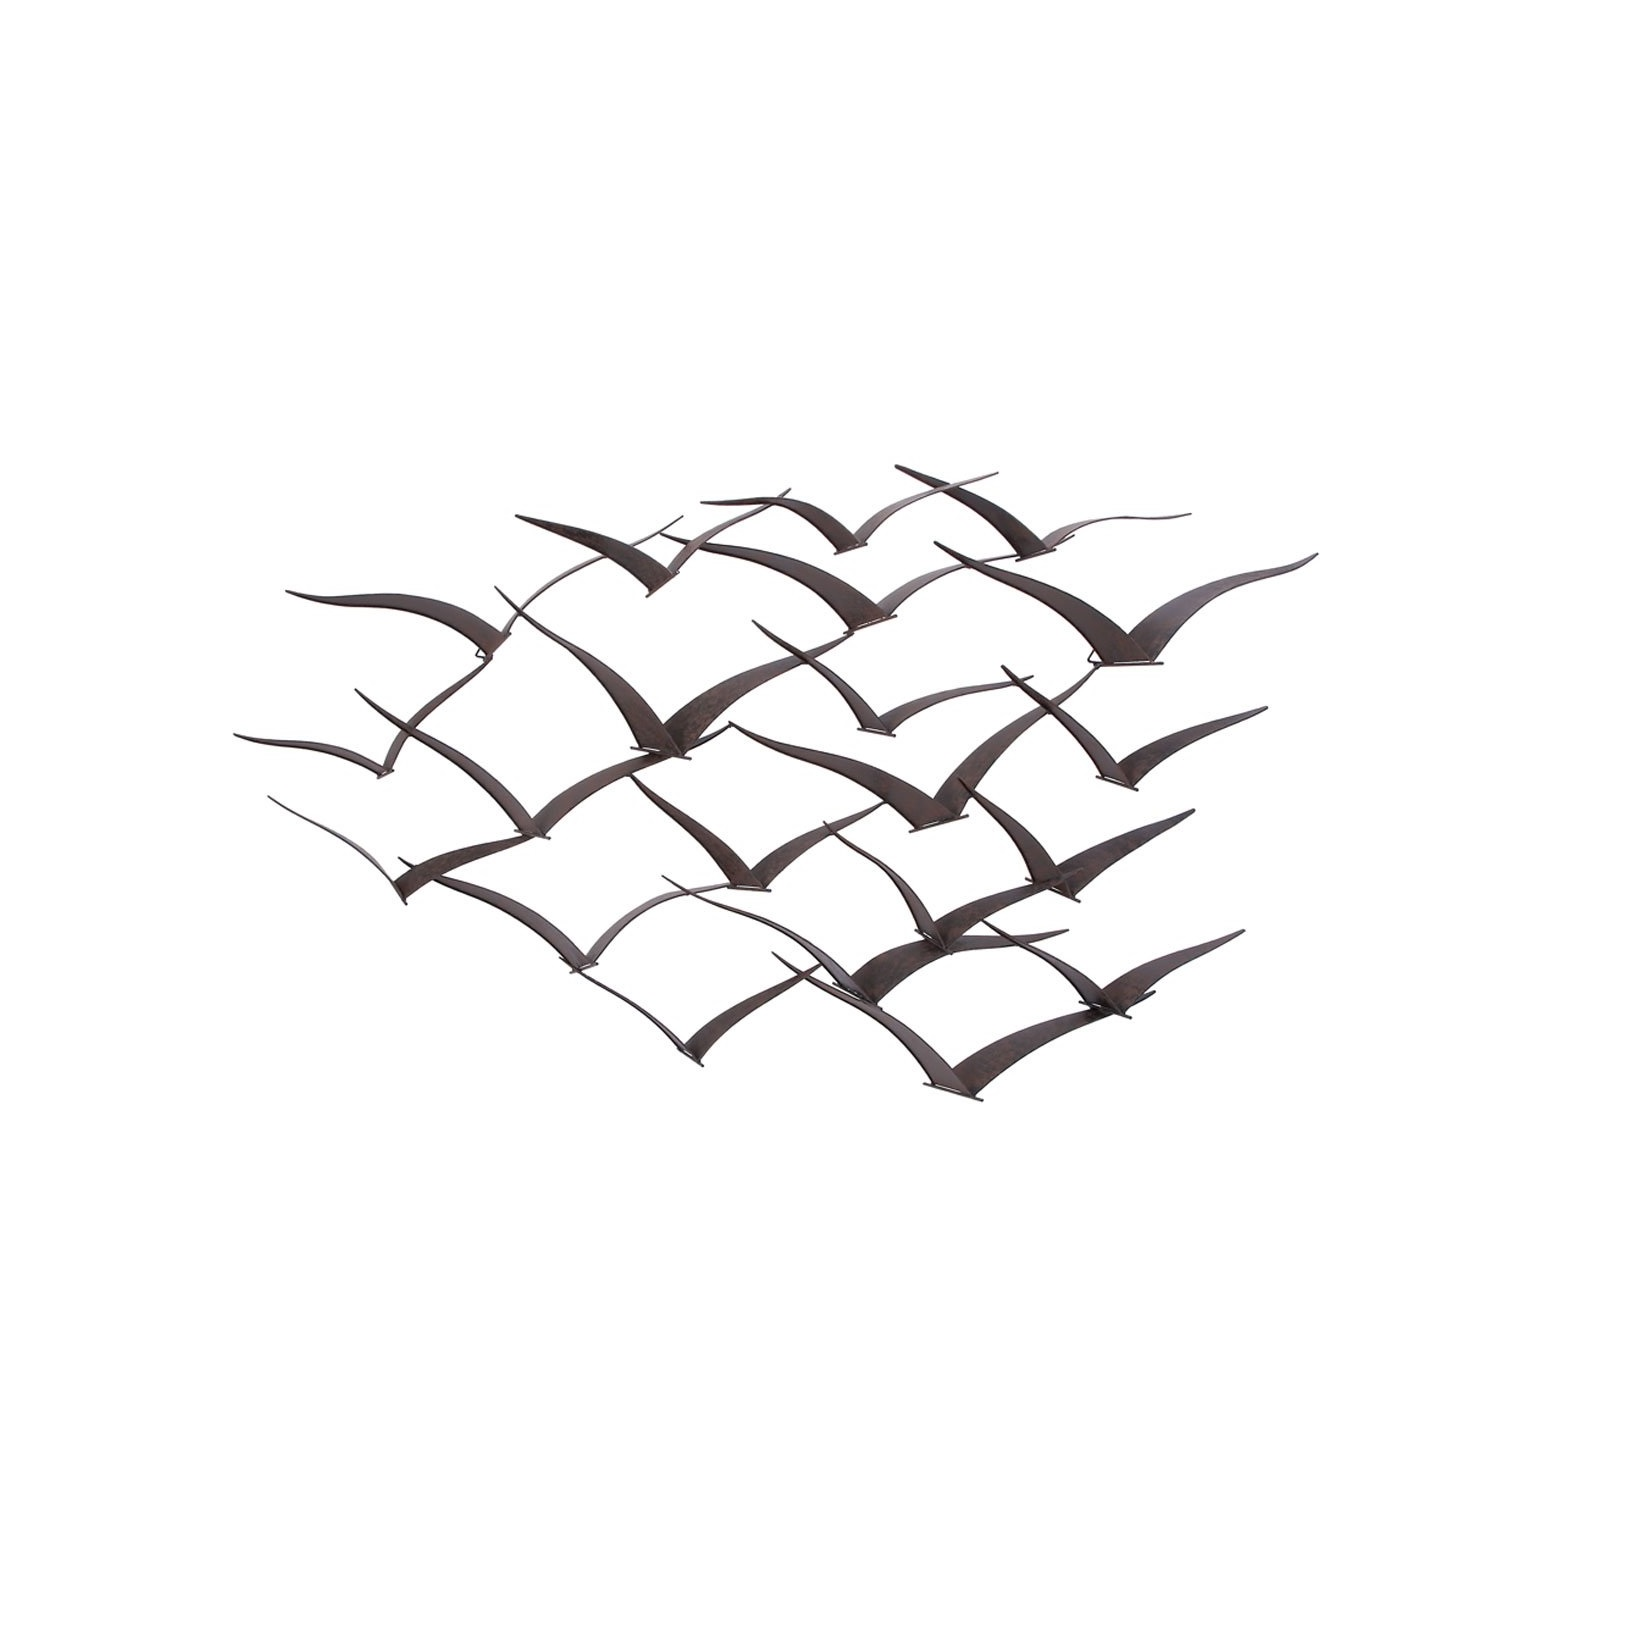 Metal Wall Sculpture of Flying Seagulls • Evyral